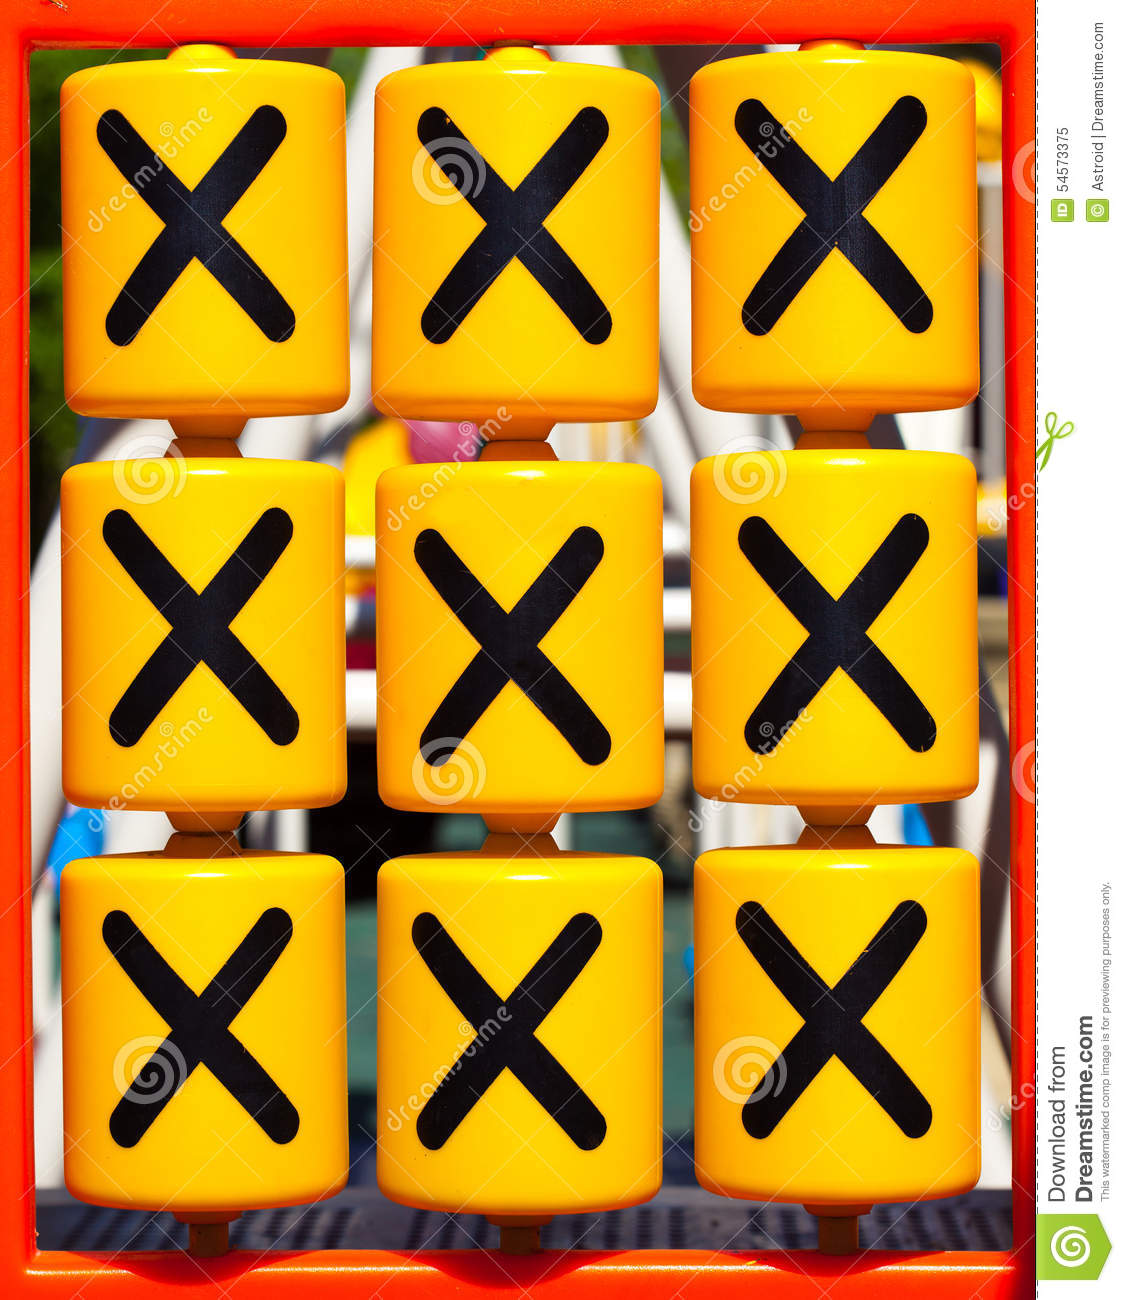 Tic Tac Toe XO Game Stock Photo - Image: 54573375